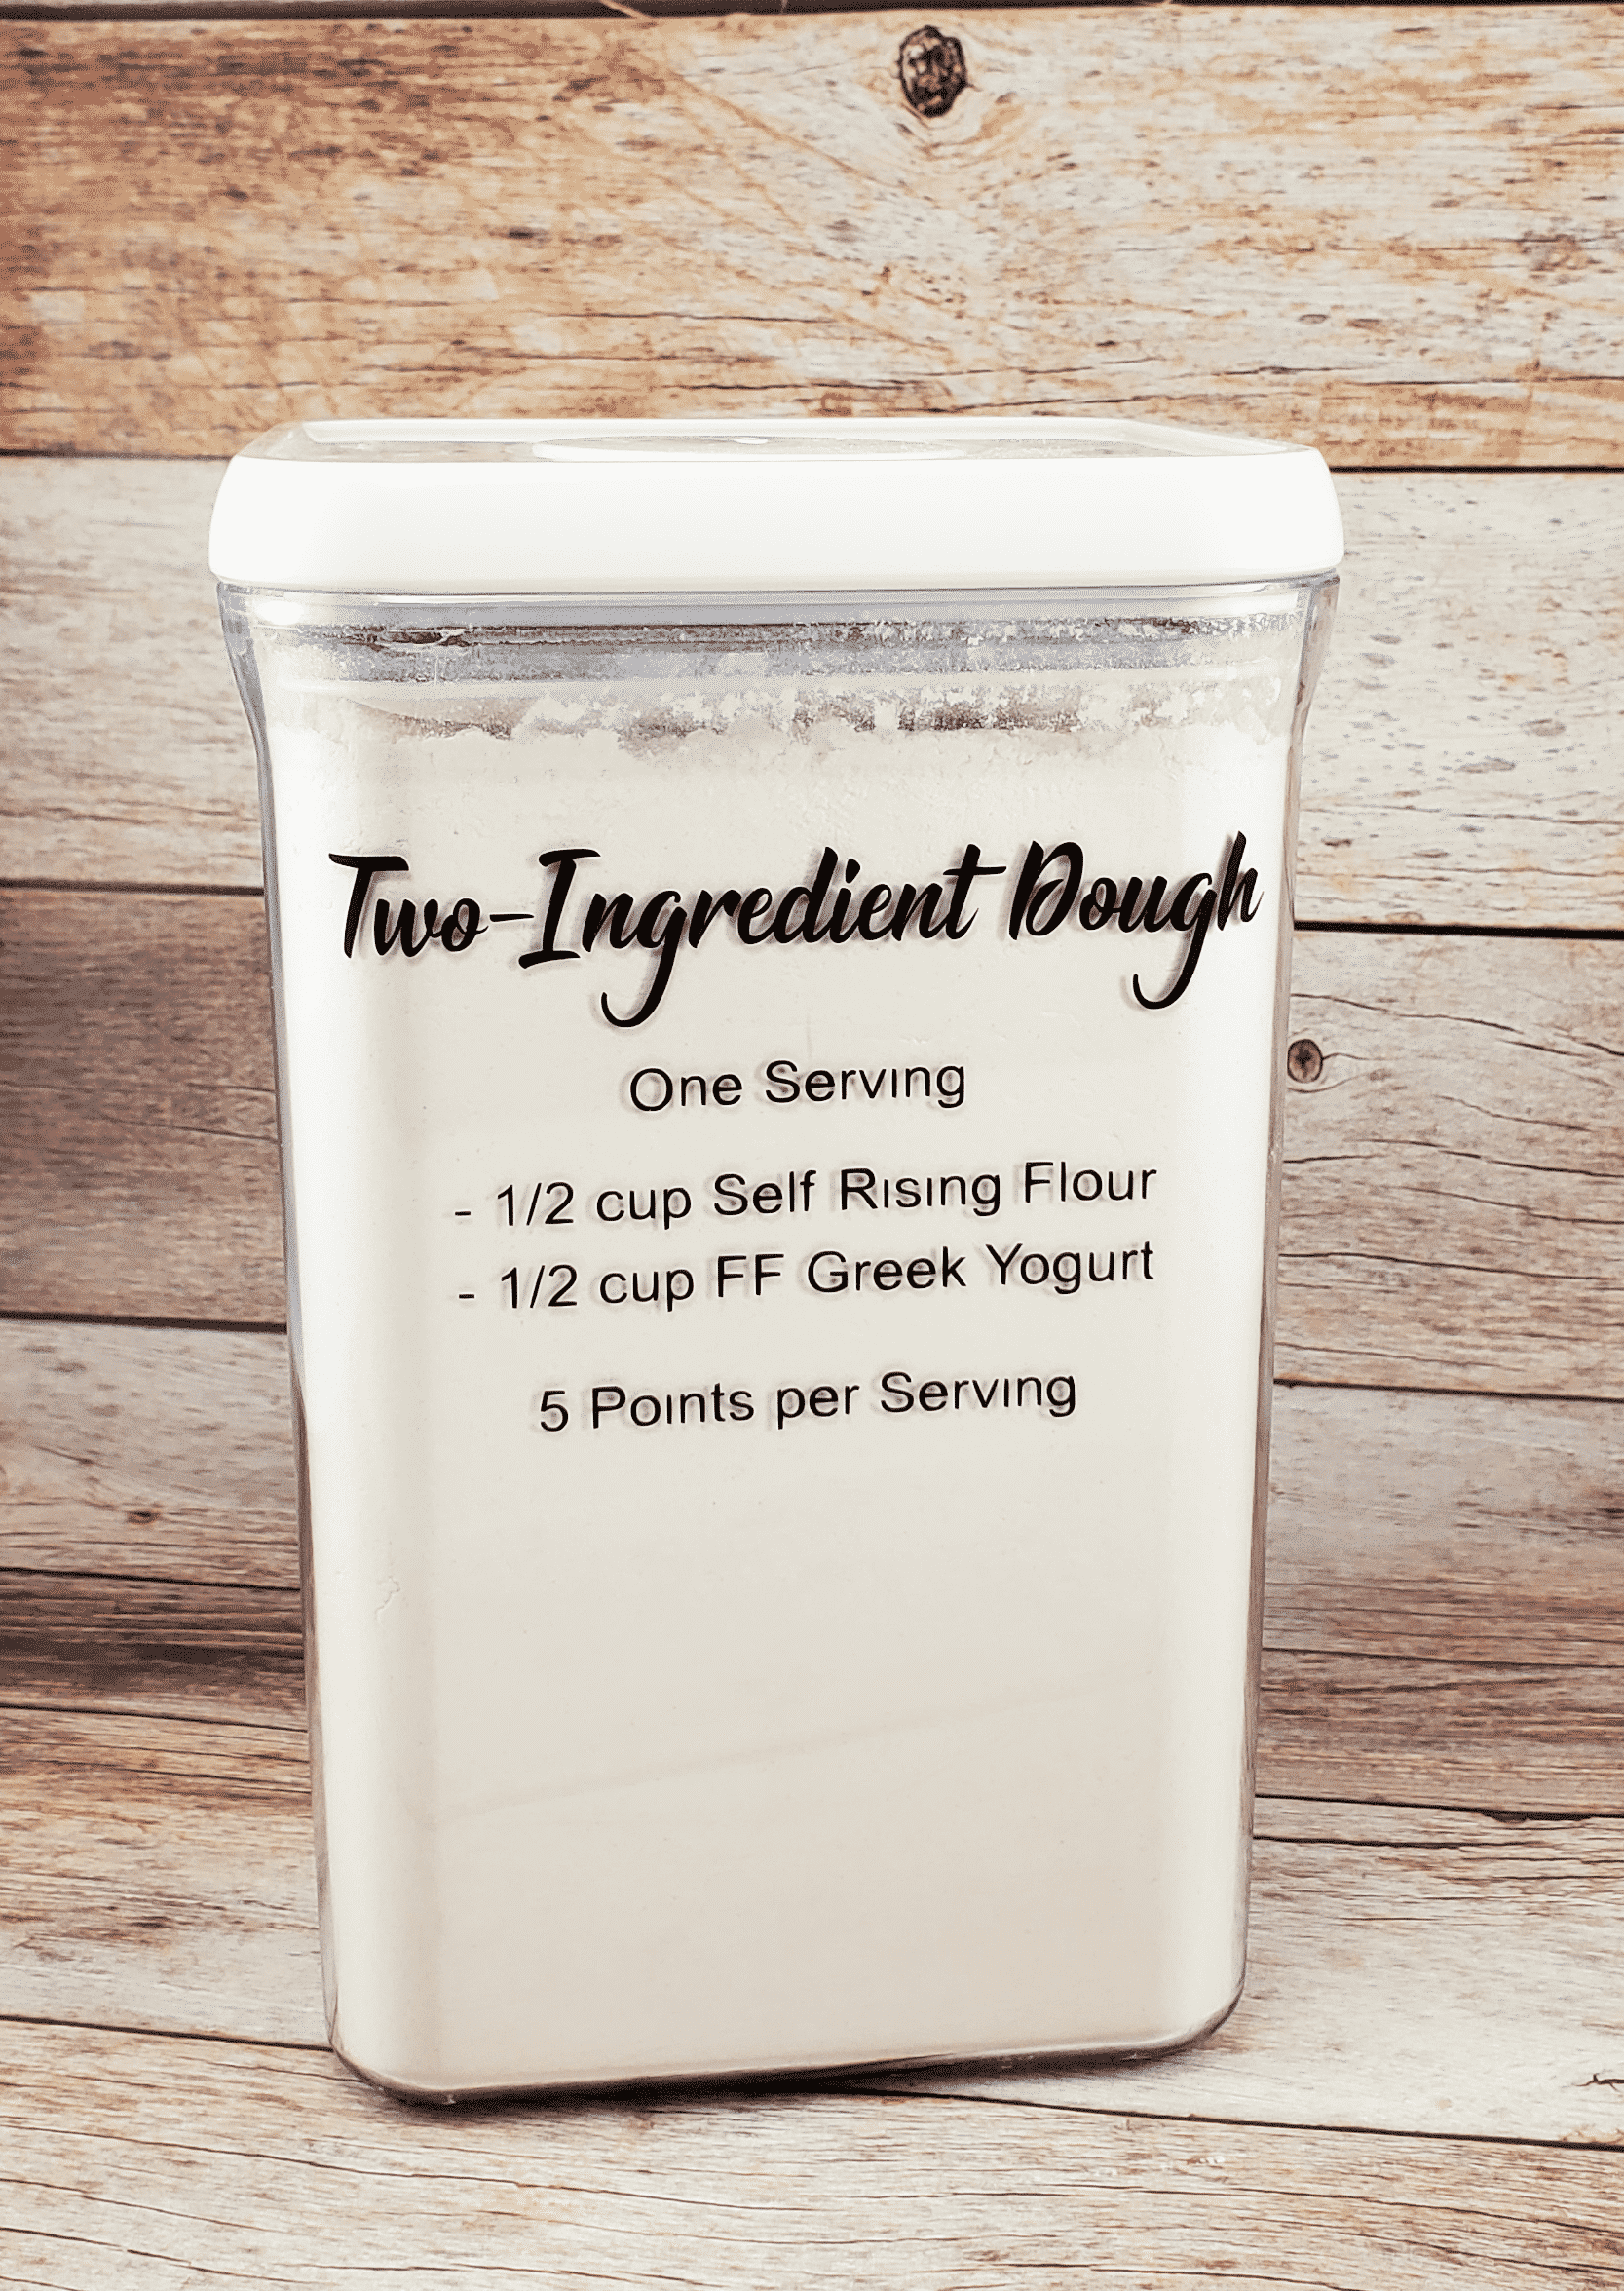 Final two ingredient dough container